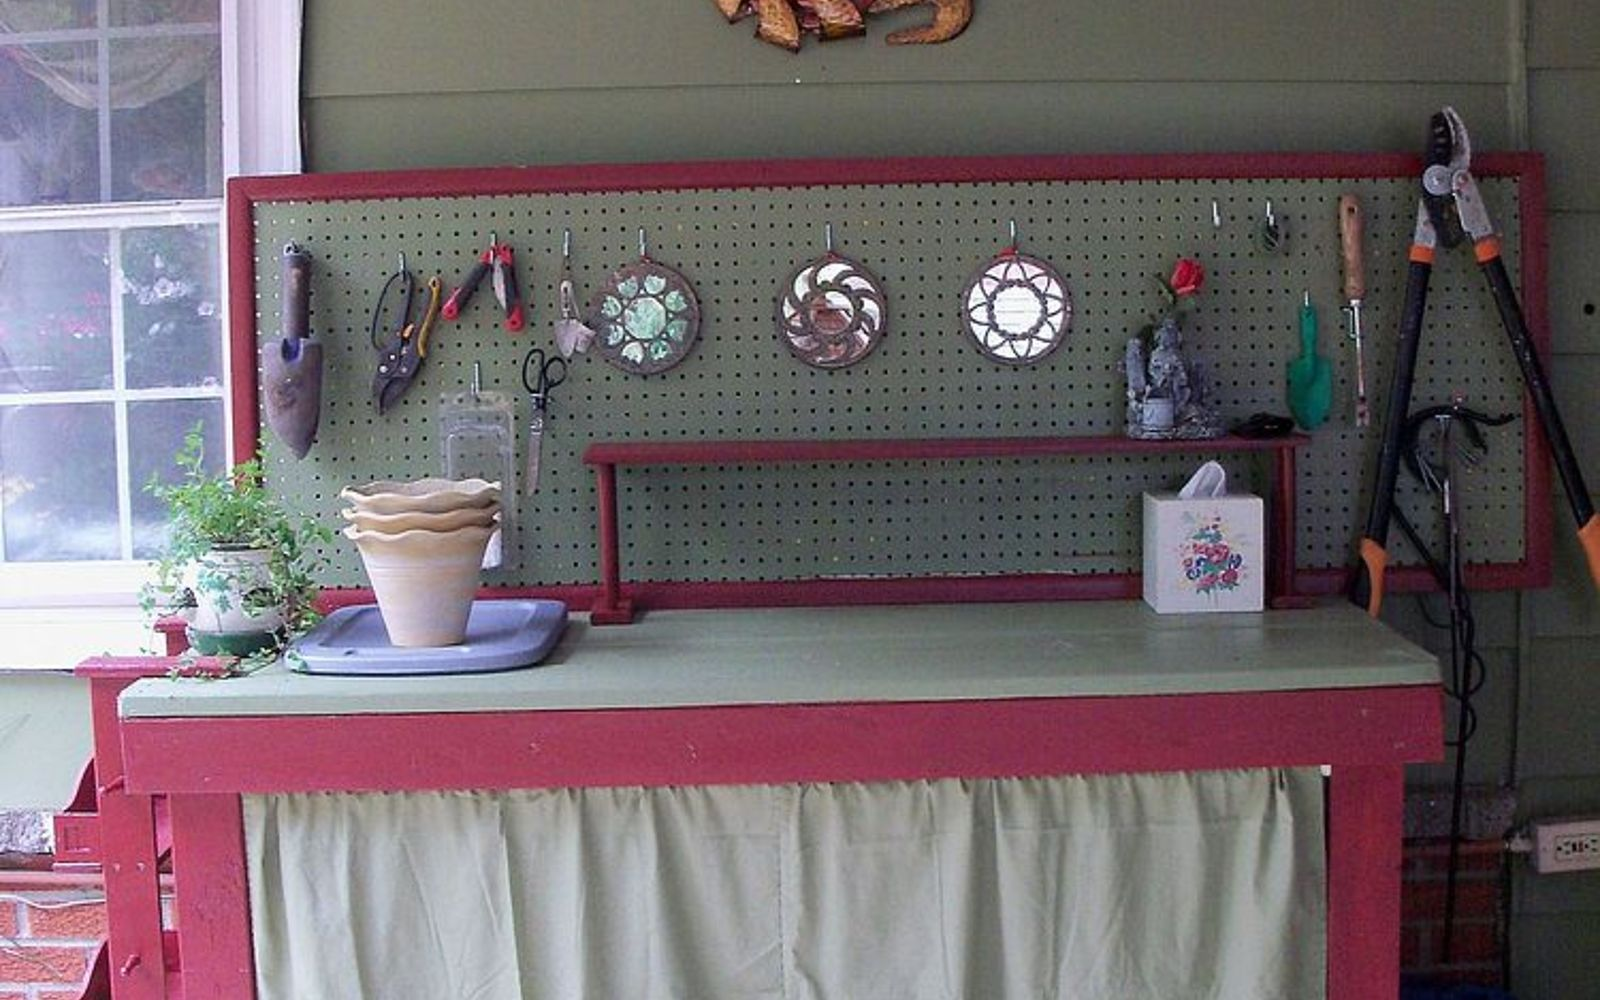 s 15 ways to organize every messy nook with pegboard, organizing, woodworking projects, Add to your potting bench for garden storage